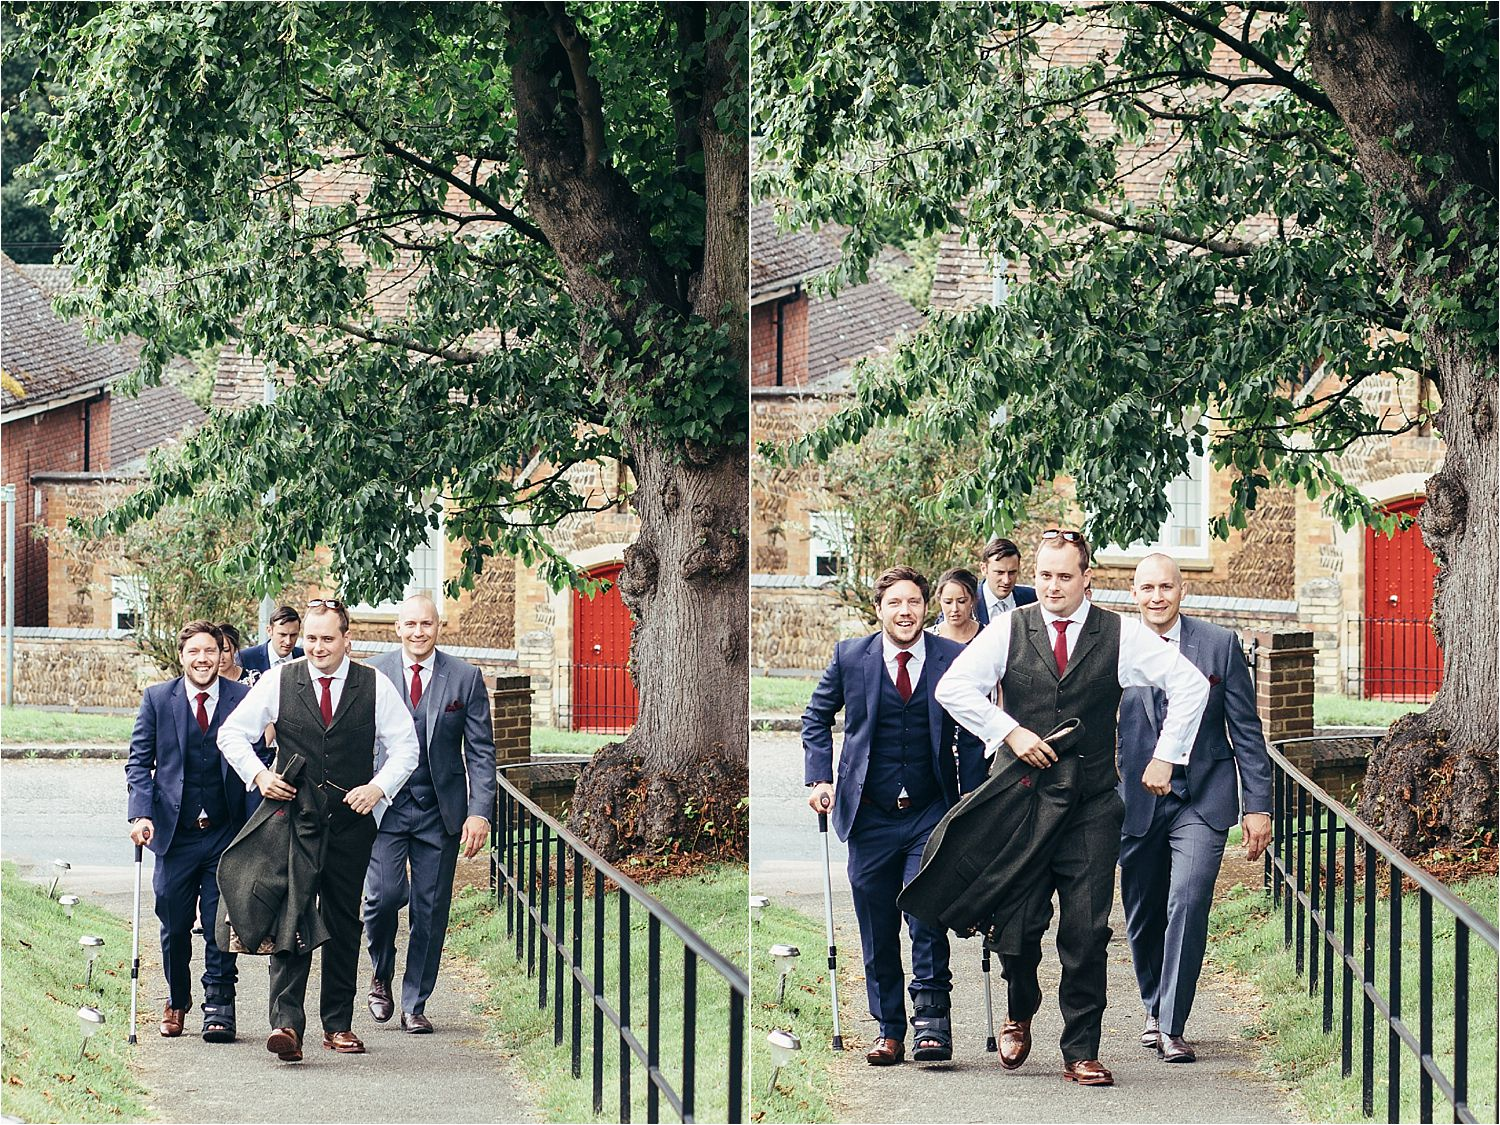 Groom and his attendants walk to church for Bedfordshire wedding